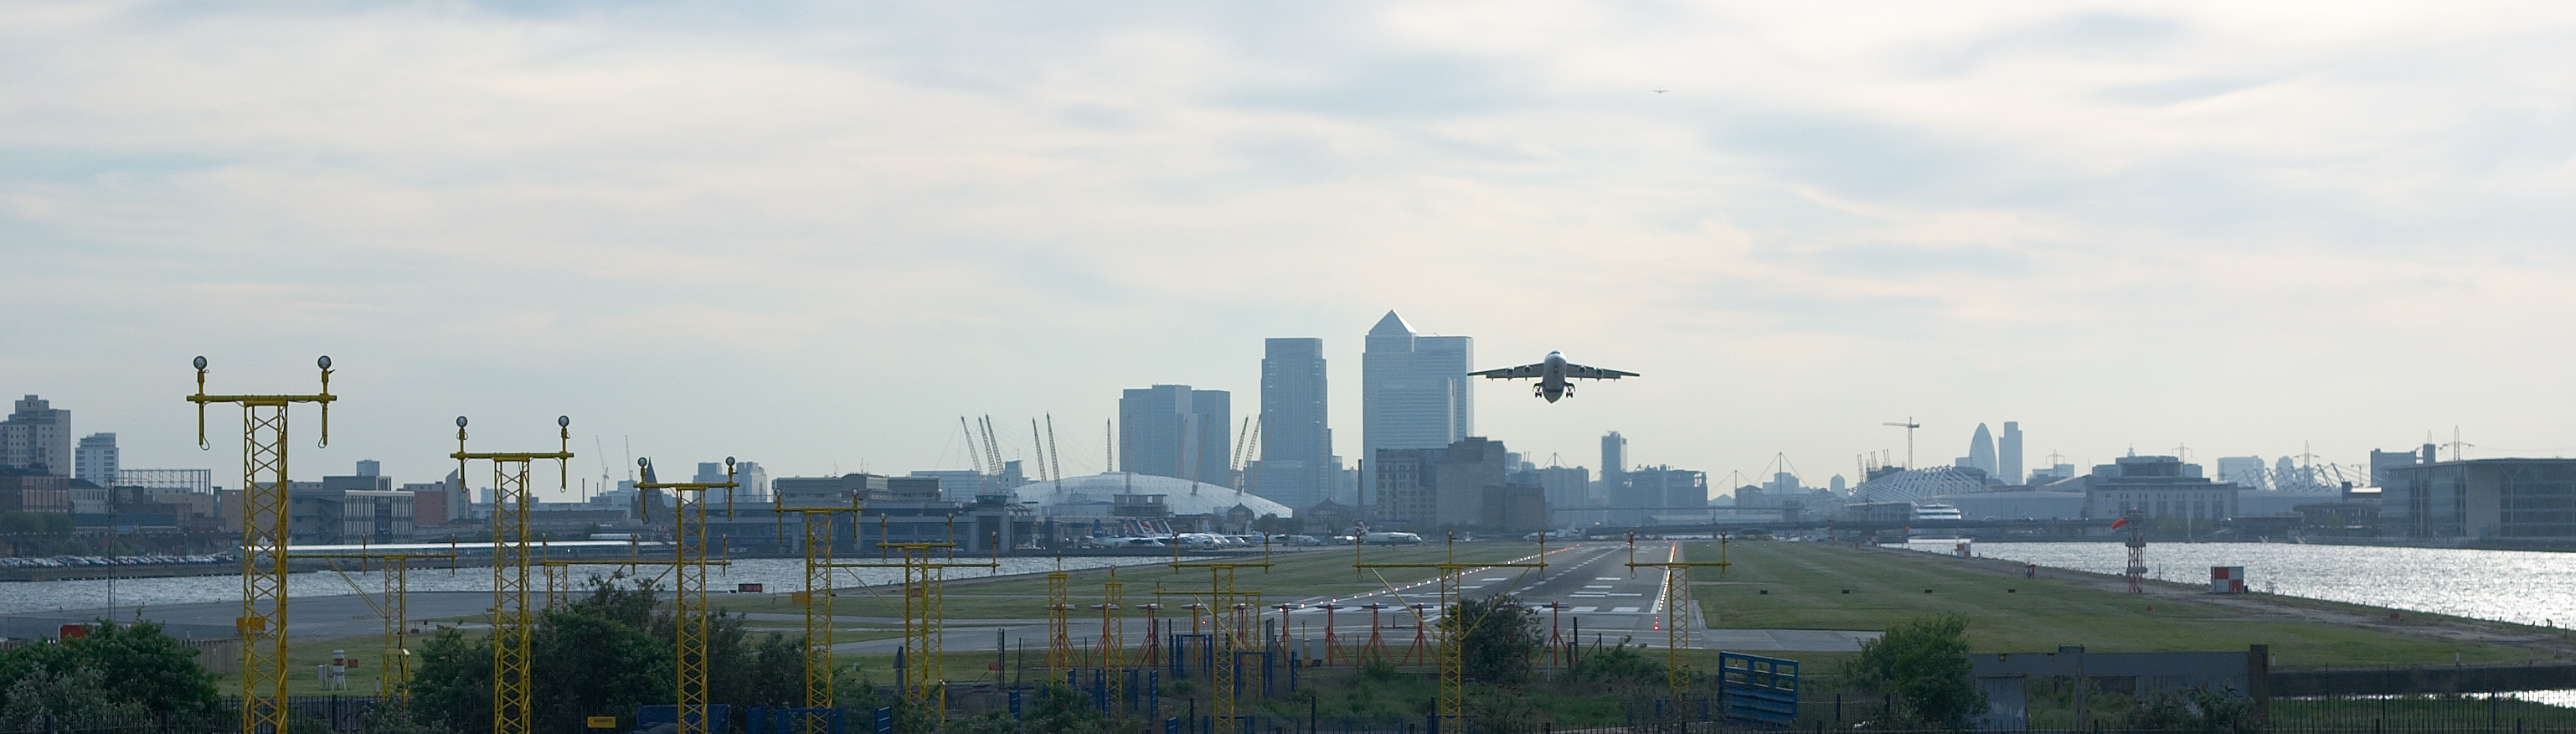 Image result for london  city  takeoff